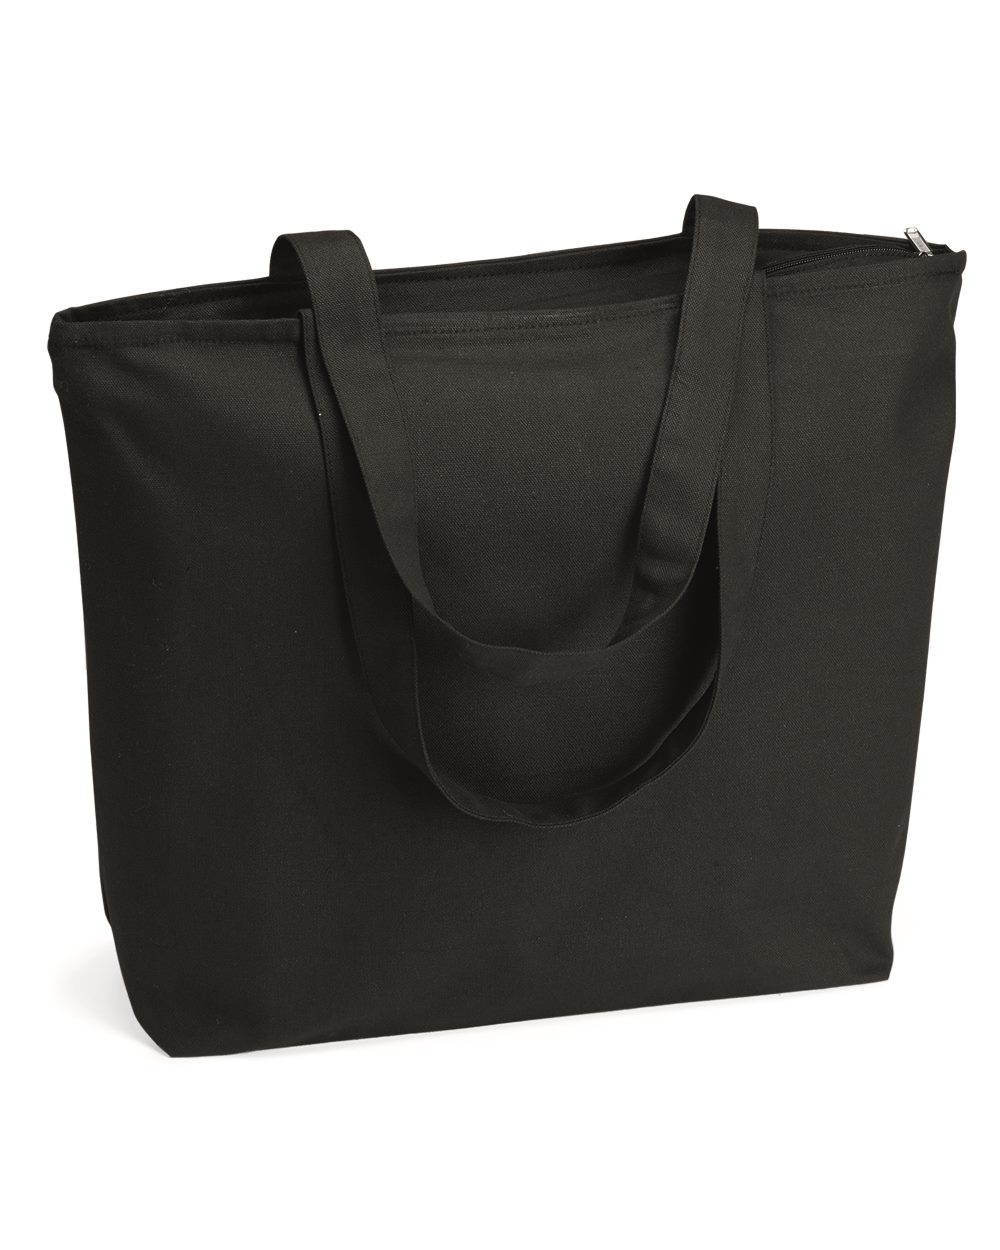 Q-Tees Q611 - 24.5L Canvas Zippered Tote